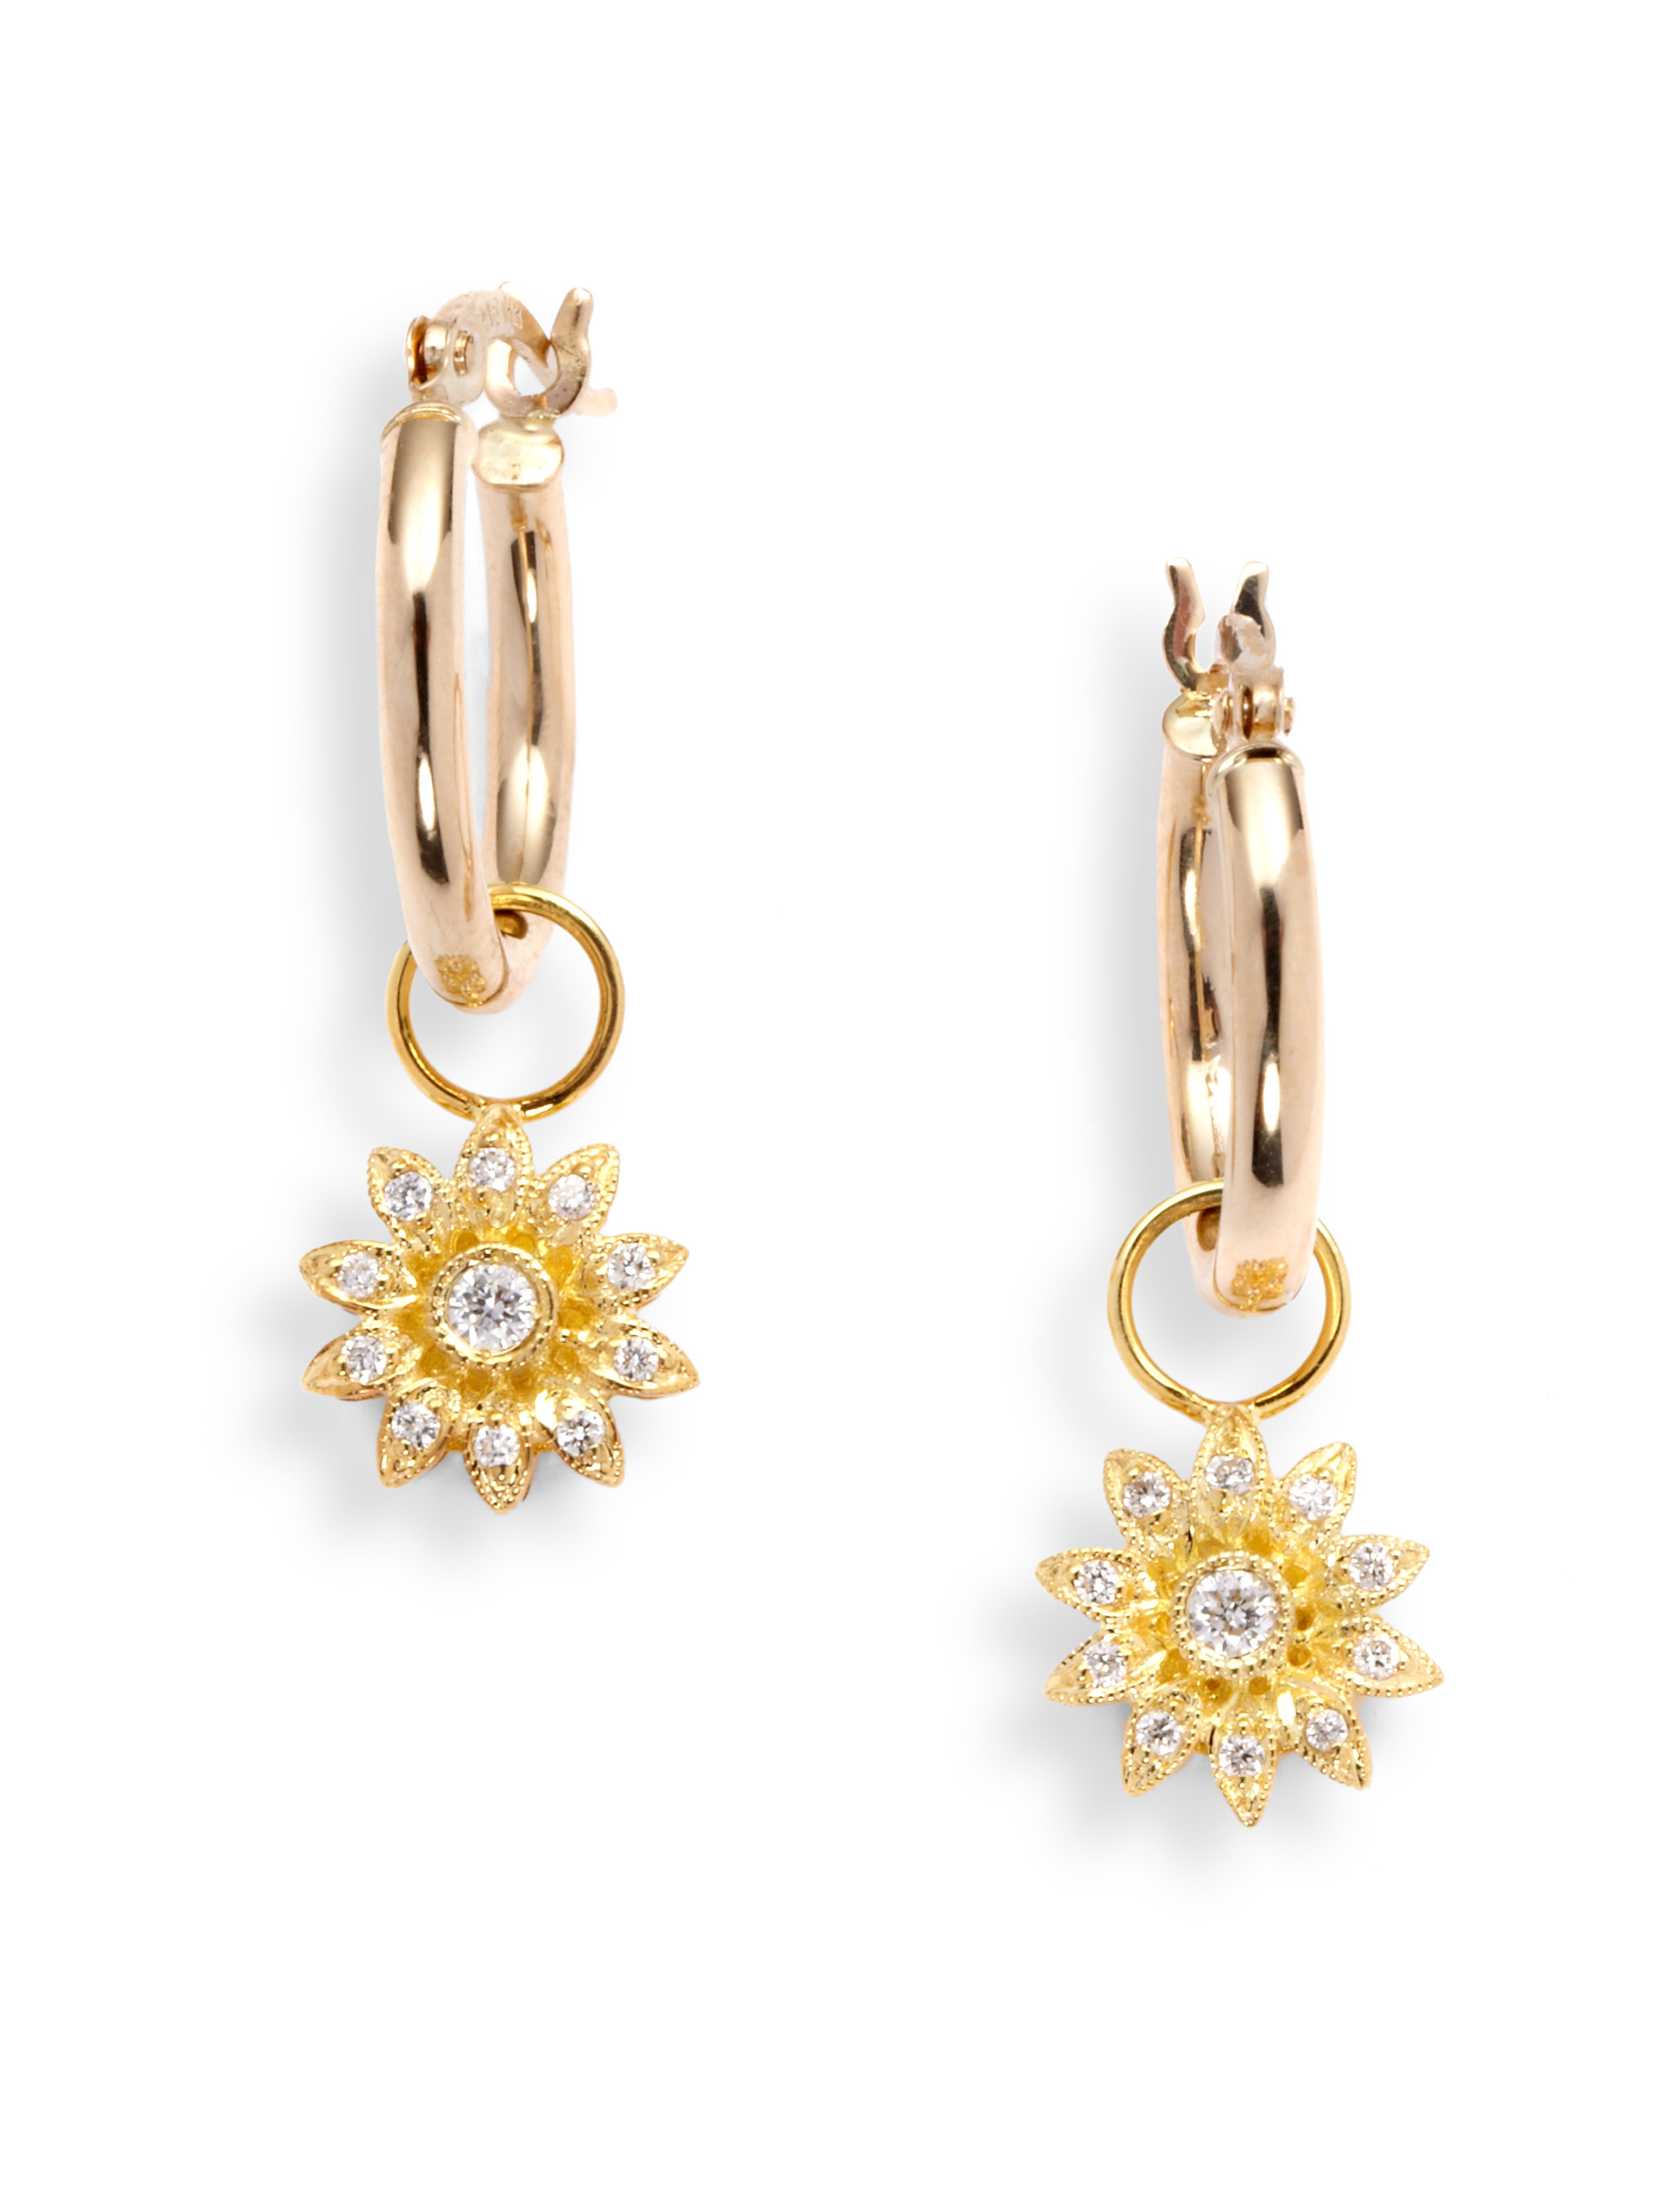 Lyst - Kc designs Diamond Flower Charm Hoop Earrings in Metallic